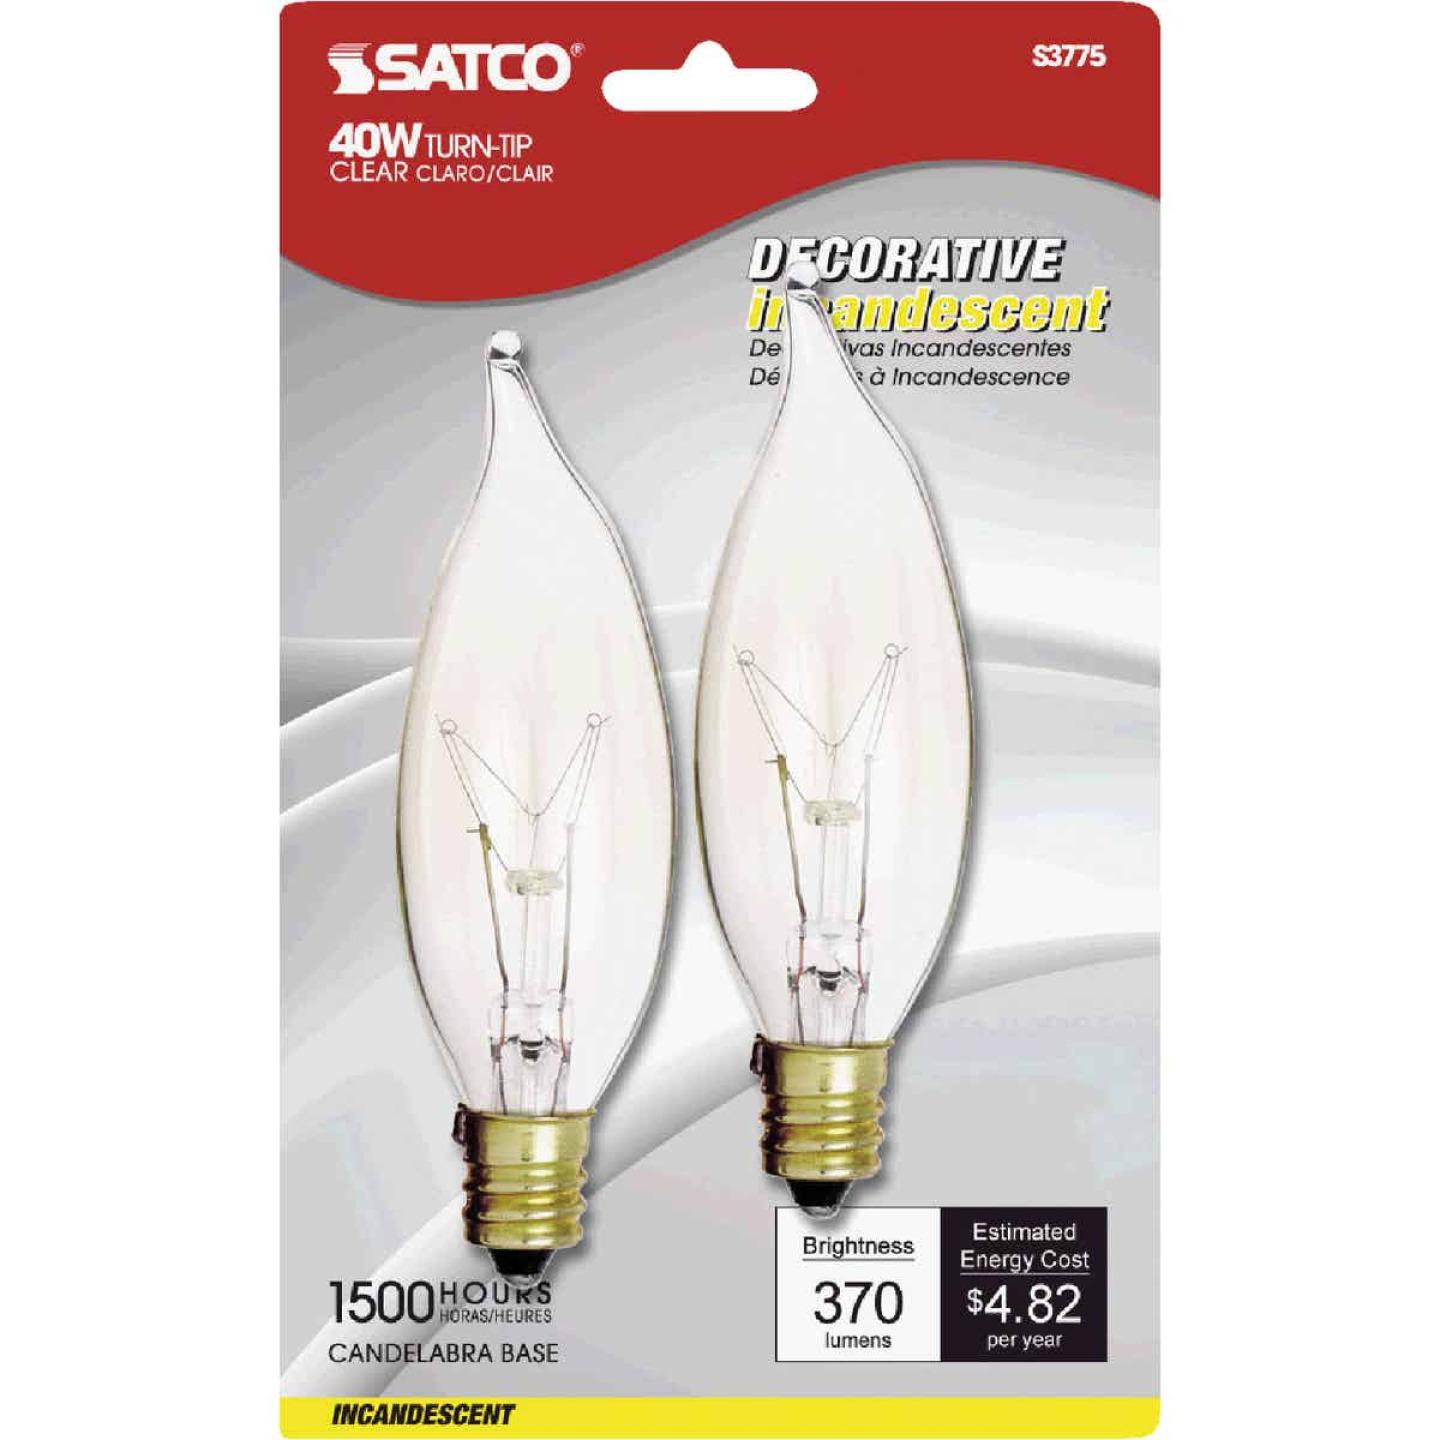 Satco 40W Clear Candelabra CA9.5 Incandescent Turn Tip Decorative Light Bulb (2-Pack) Image 1